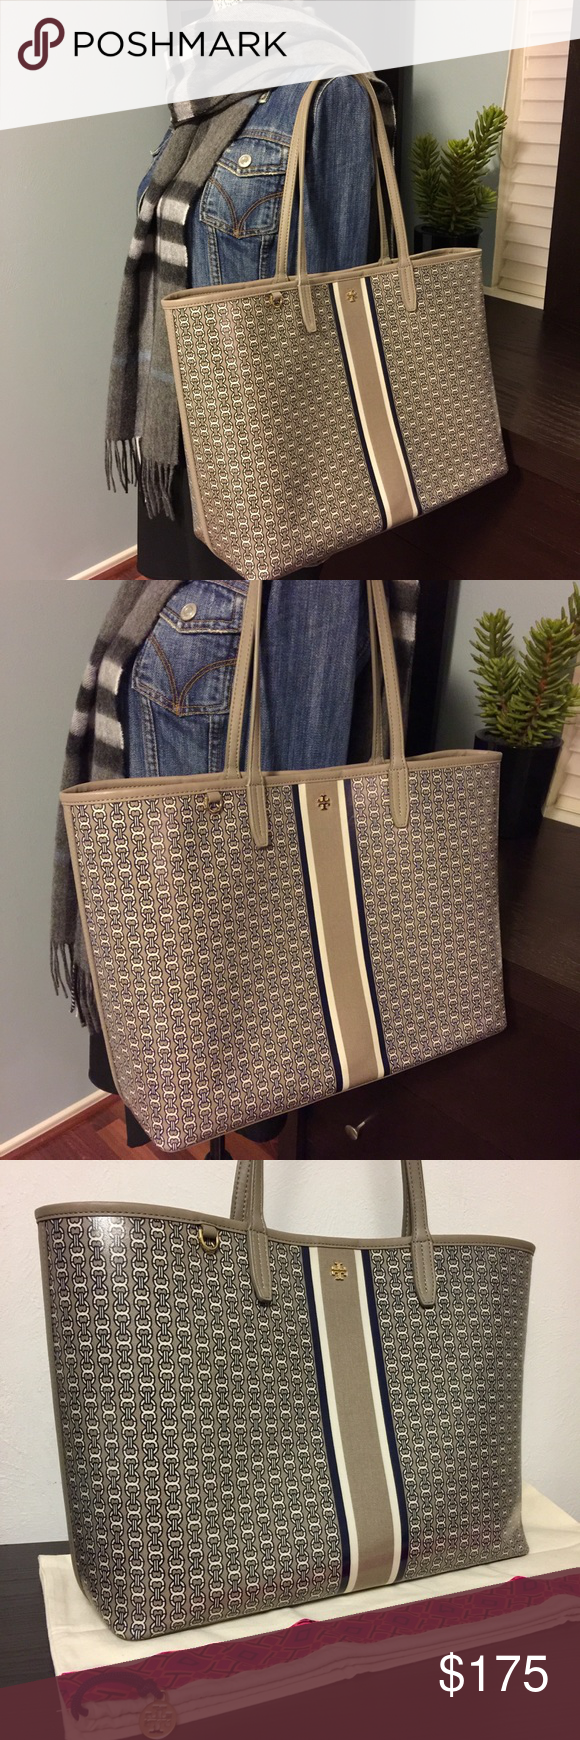 4f7d564d7 Tory Burch French Gray Gemini Link Stripe Tote Bag 100% authentic Tory  Burch Gemini Link tote bag in French gray. Preowned but in brand new  condition, ...